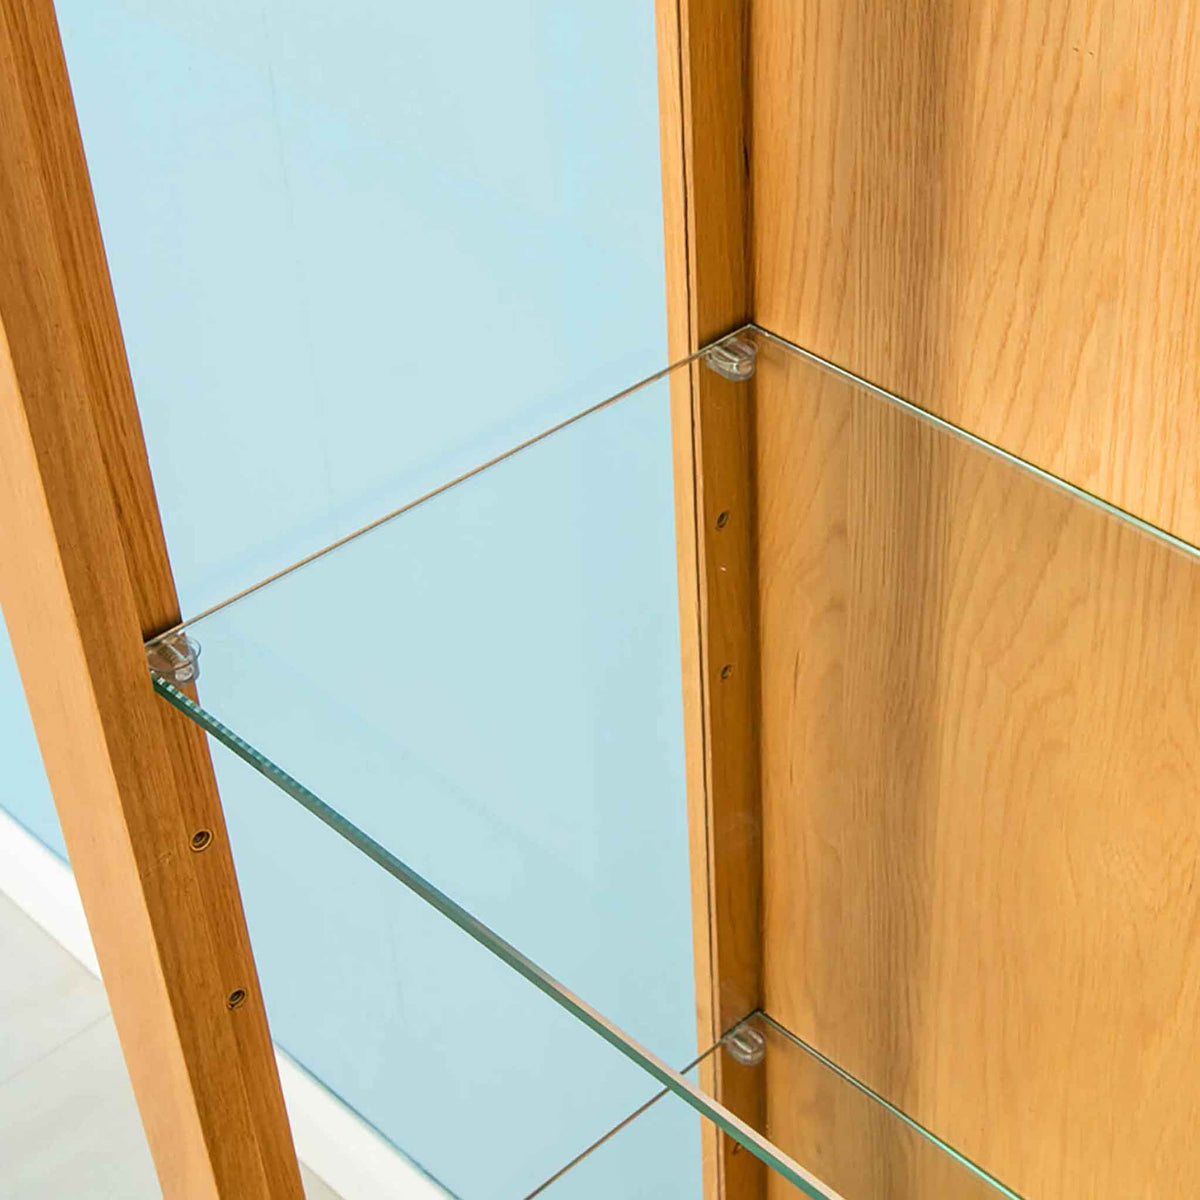 Roseland Oak Glass Display Cabinet - Close Up of Glass Shelves